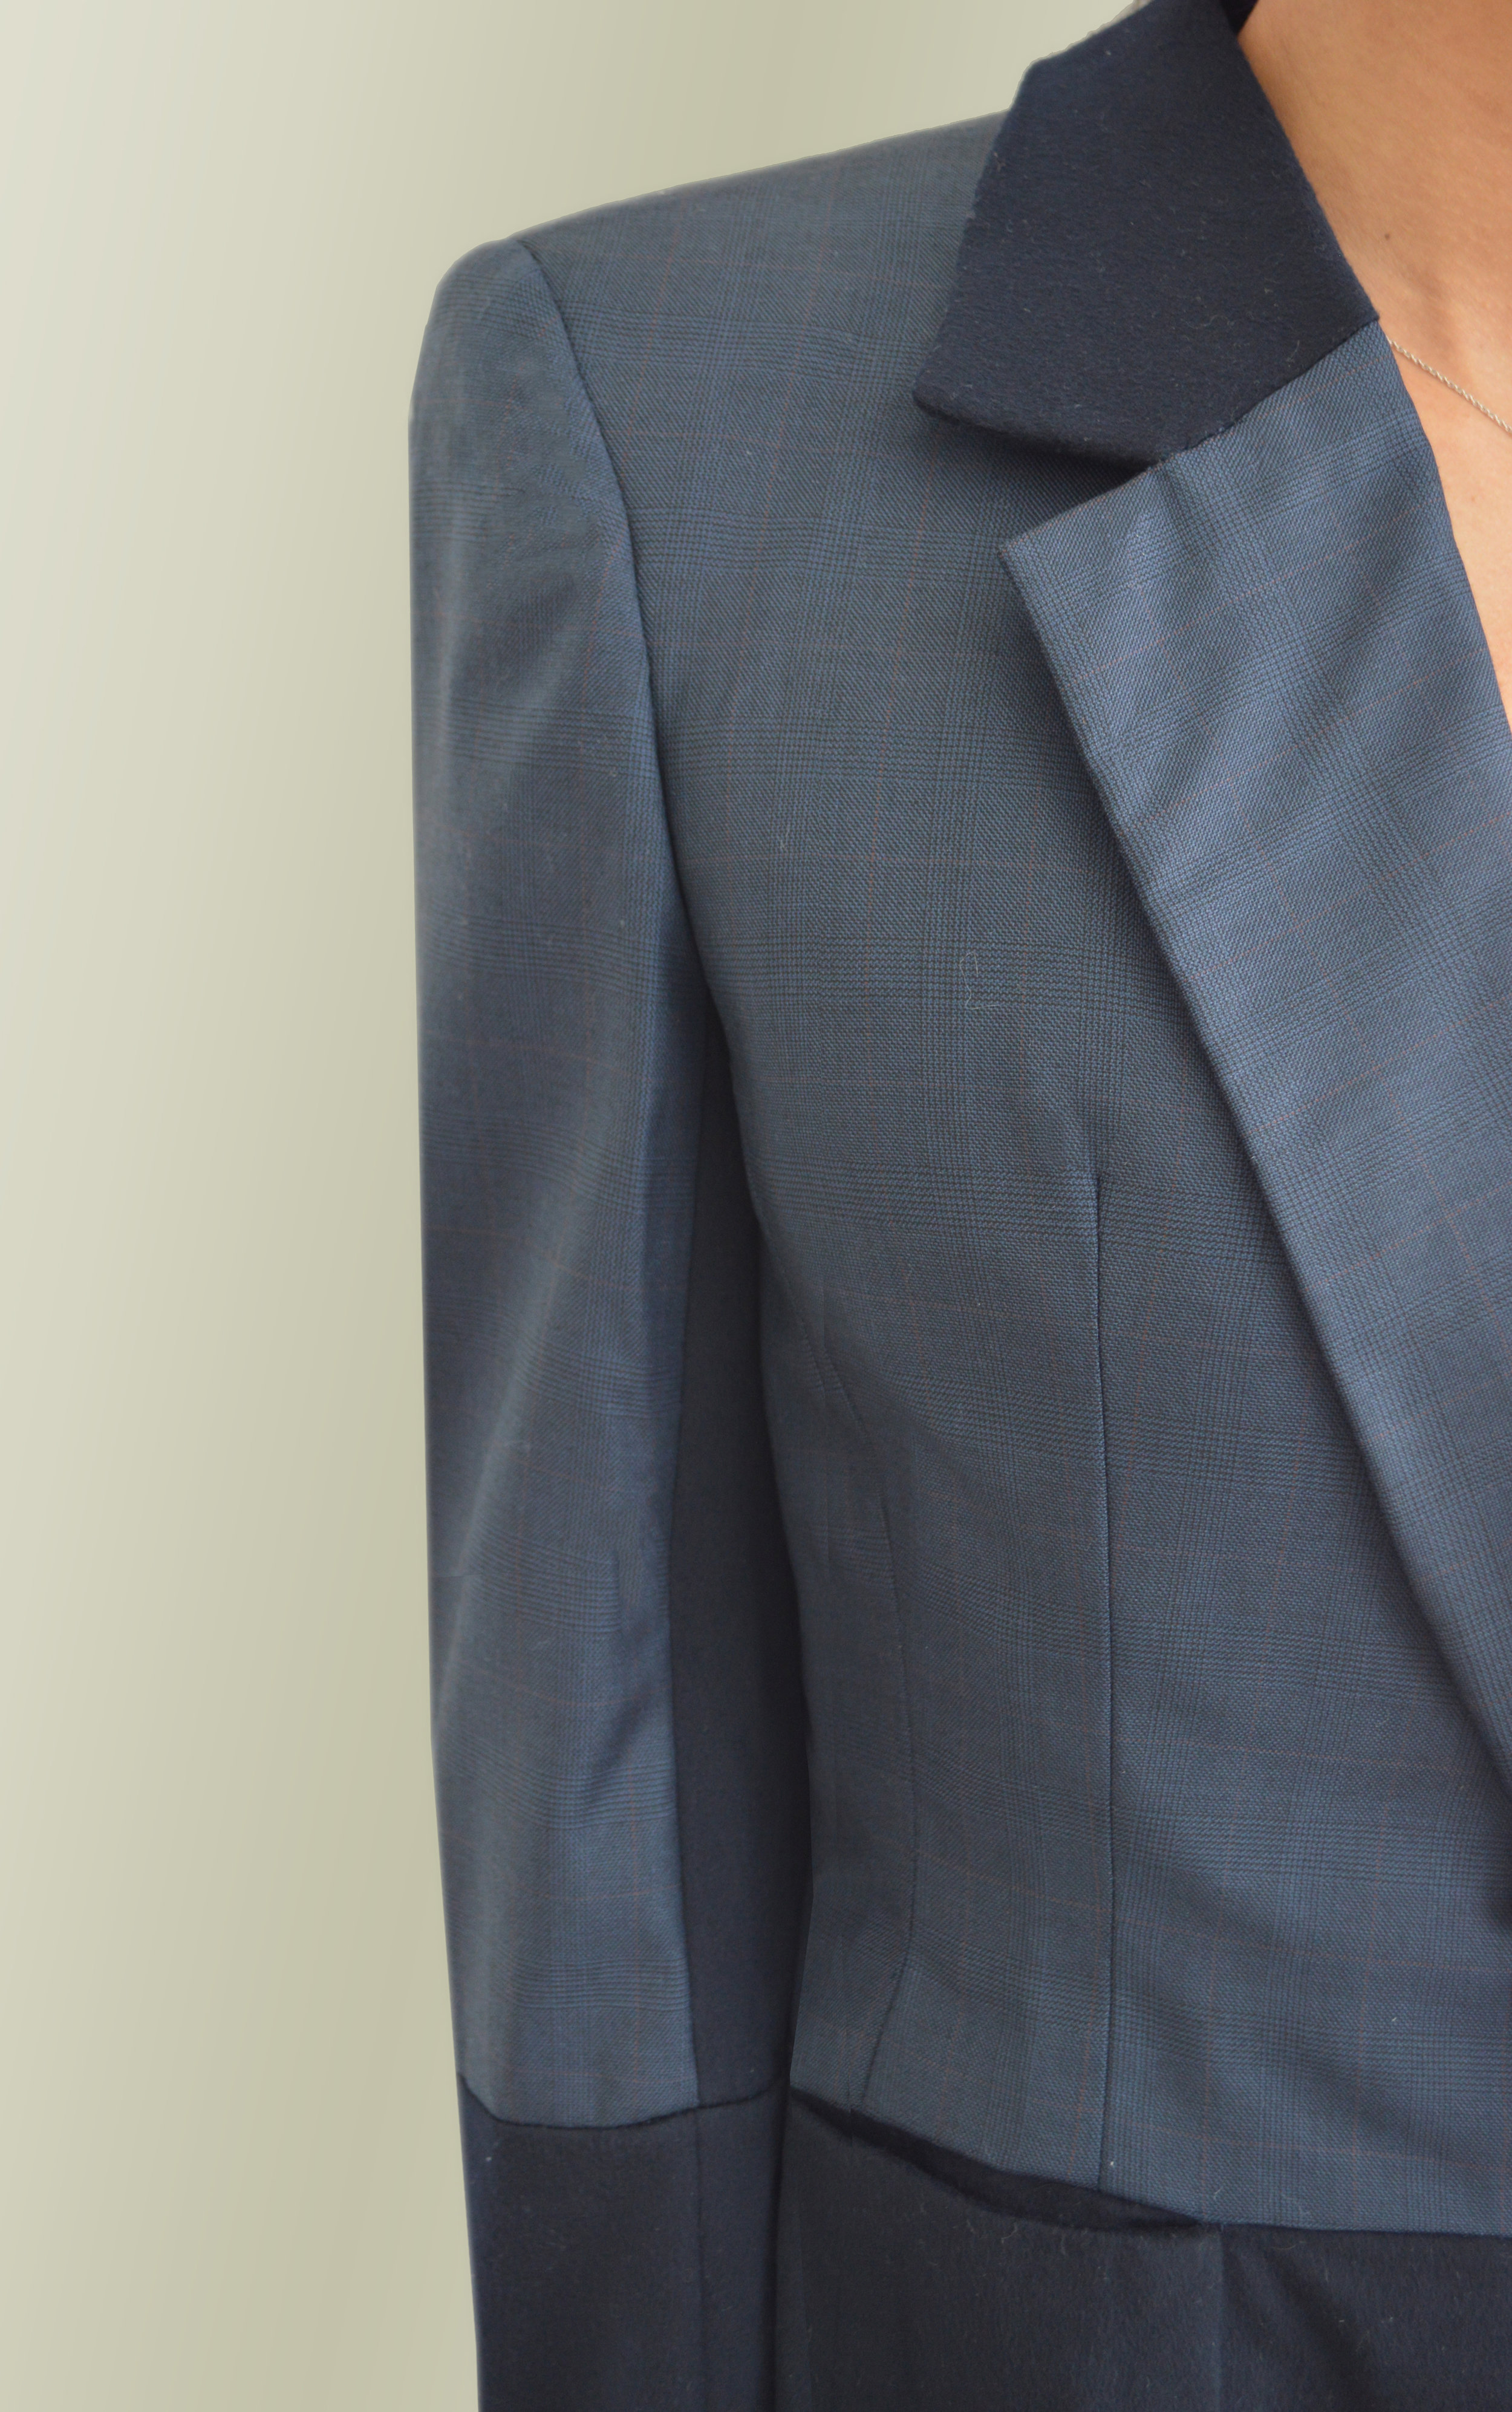 Traditional tailoring - fitting - checking collar, lapel and sleeve roll